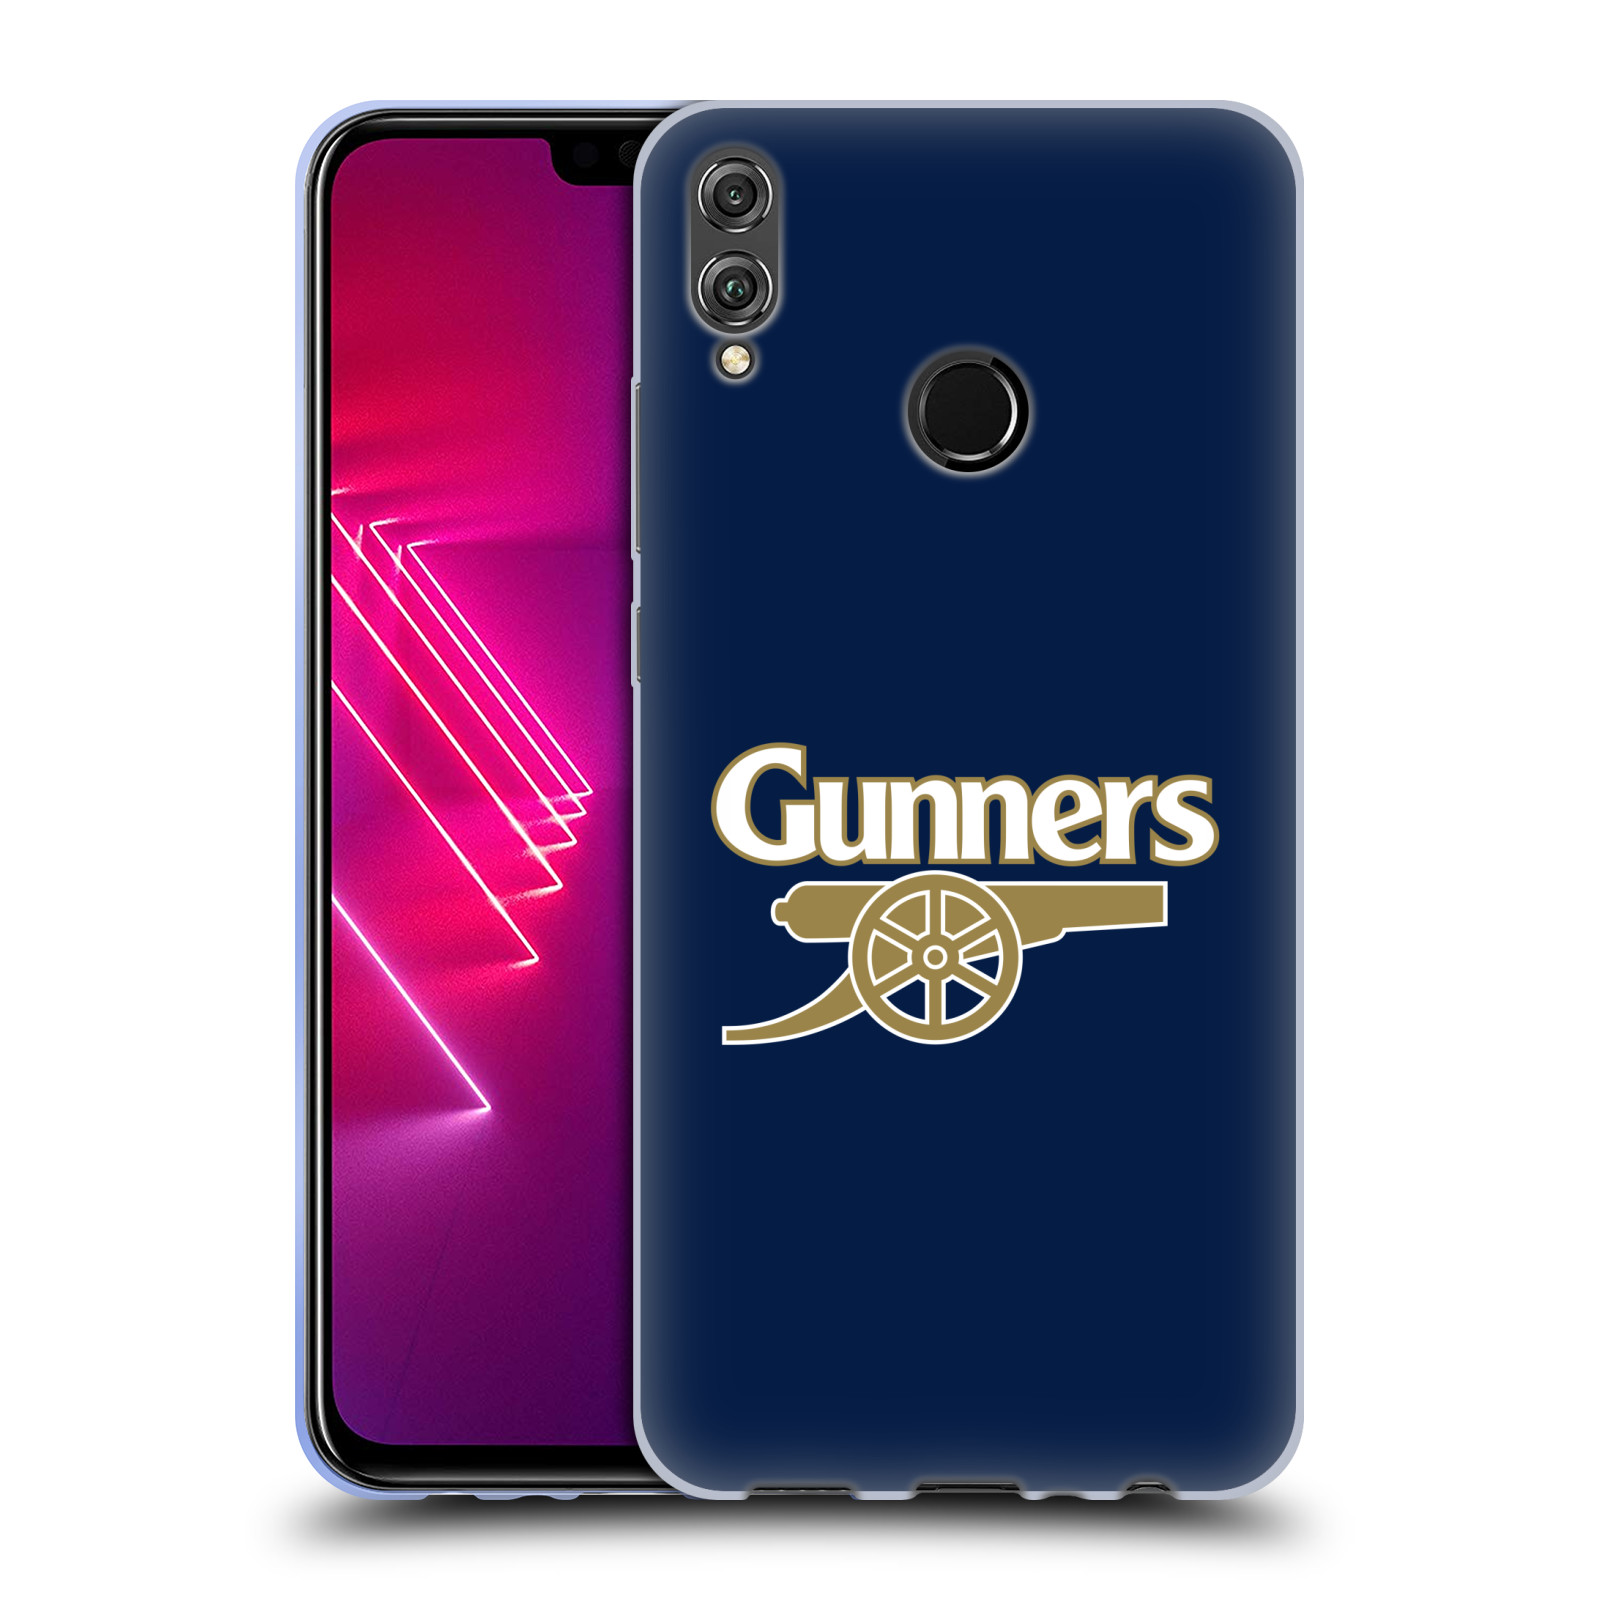 Silikonové pouzdro na mobil Honor View 10 Lite - Head Case - Arsenal FC - Gunners